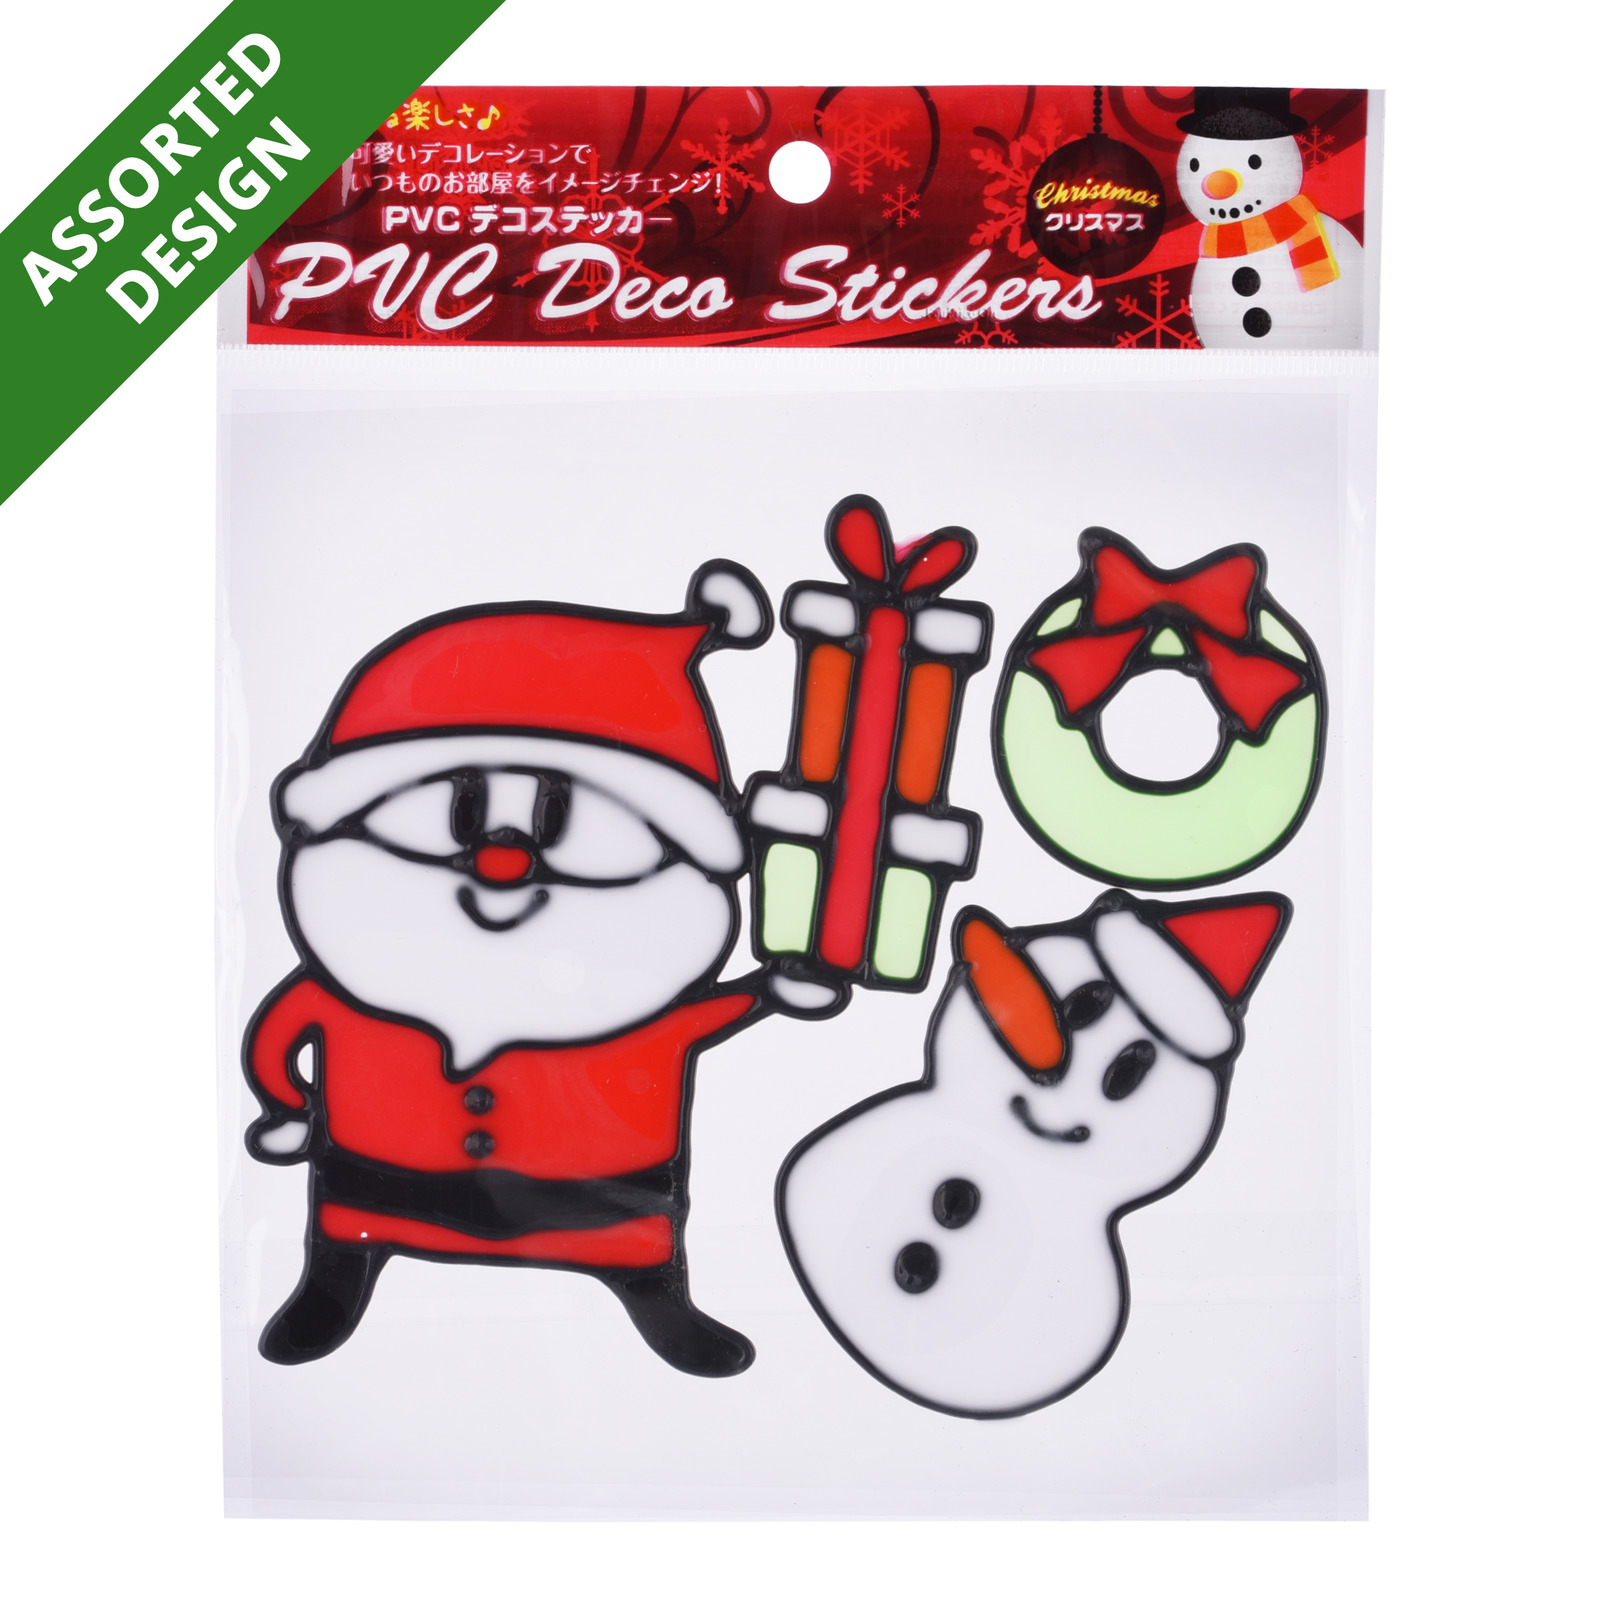 Imported Christmas PVC Deco Stickers - Assorted